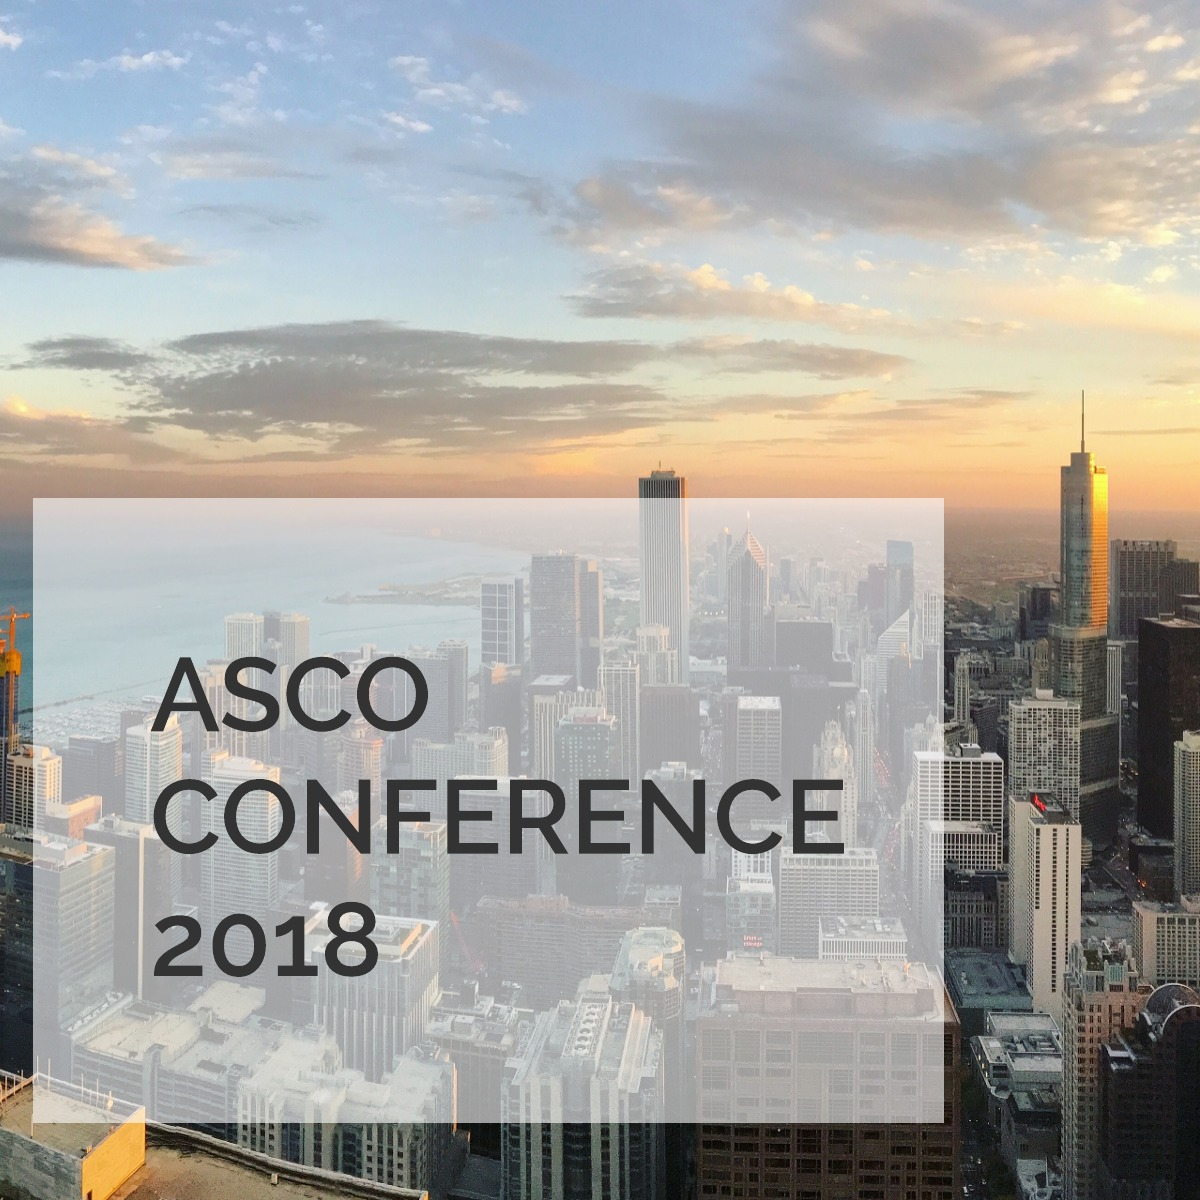 Research highlights from ASCO's 2018 Annual Meeting